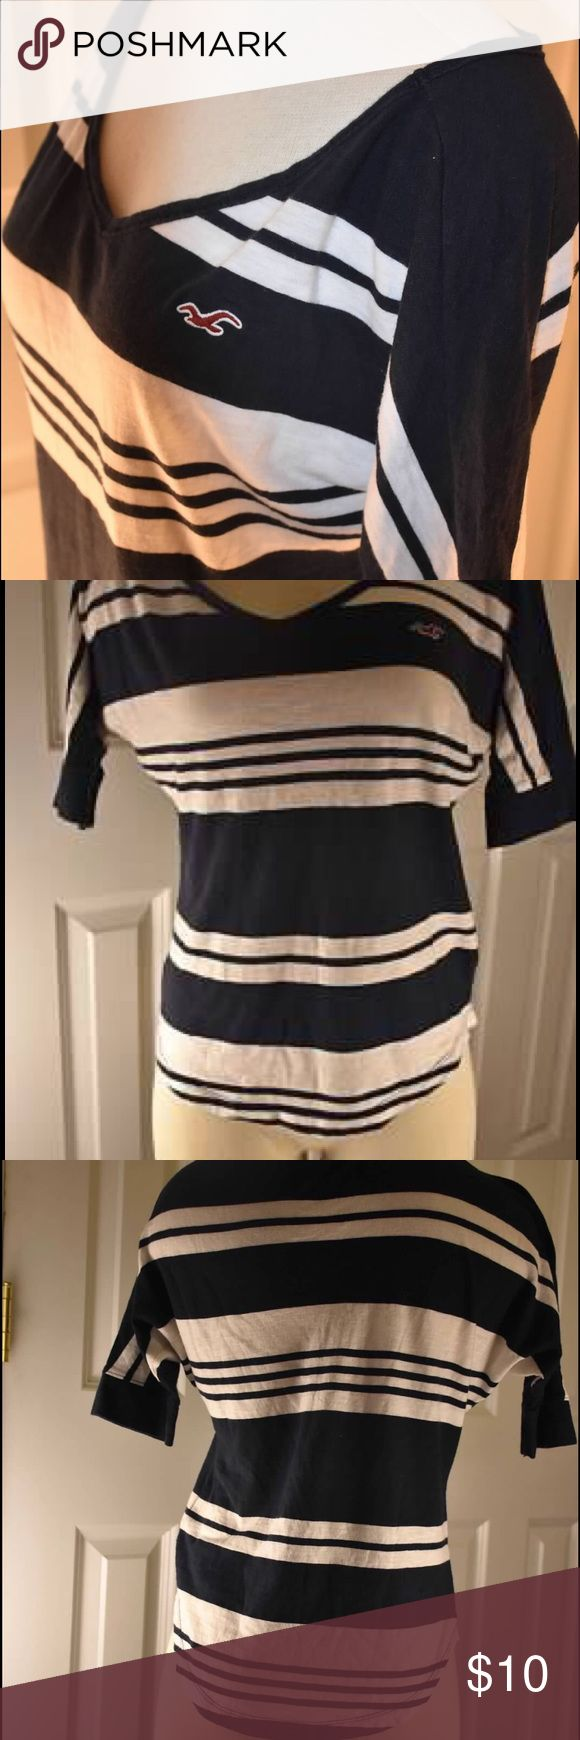 Hollister XS Navy/White stripe short sleeve top Barely worn Hollister brand XS sized short sleeved top.  Navy and white striped with high low fall bottom and longer fitted shirt sleeves Hollister Tops Tees - Short Sleeve